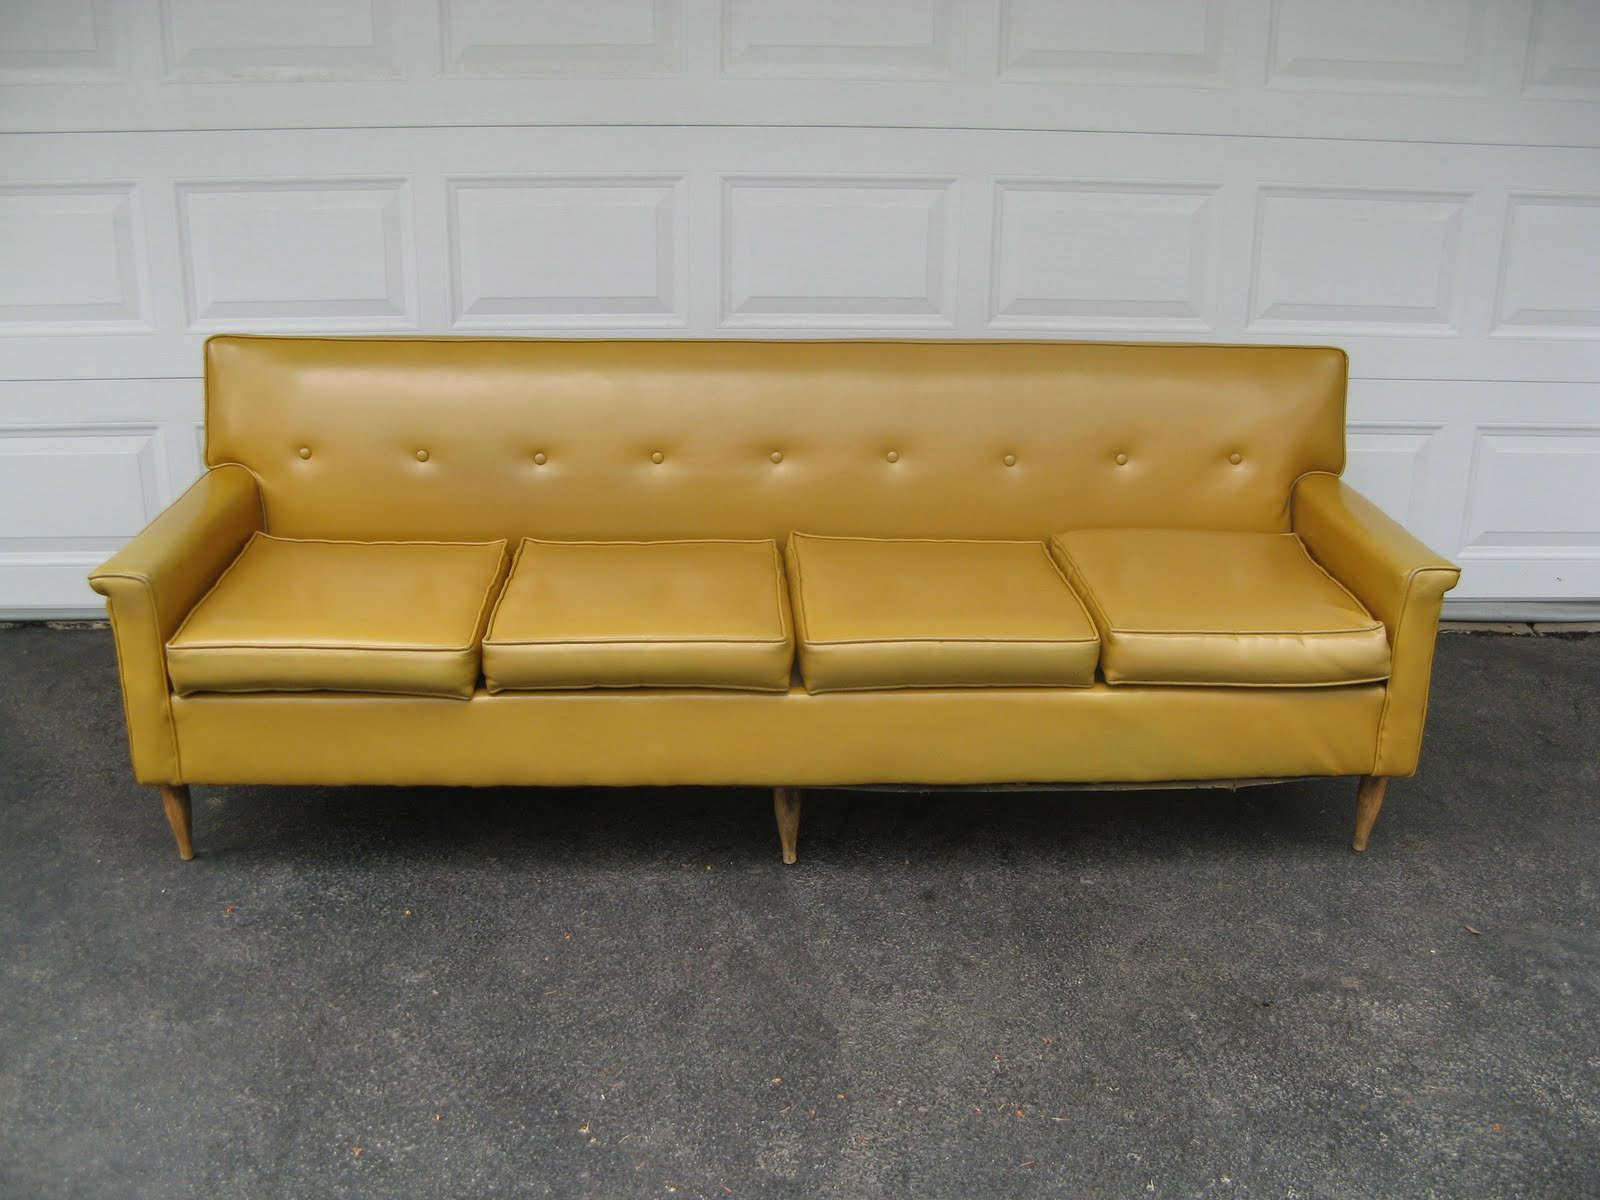 Pottery Barn Sleeper Sofa Ebay Lacrosse Furniture Soothing Queen Leather Couches 3pc Sectional Microfiber Faux